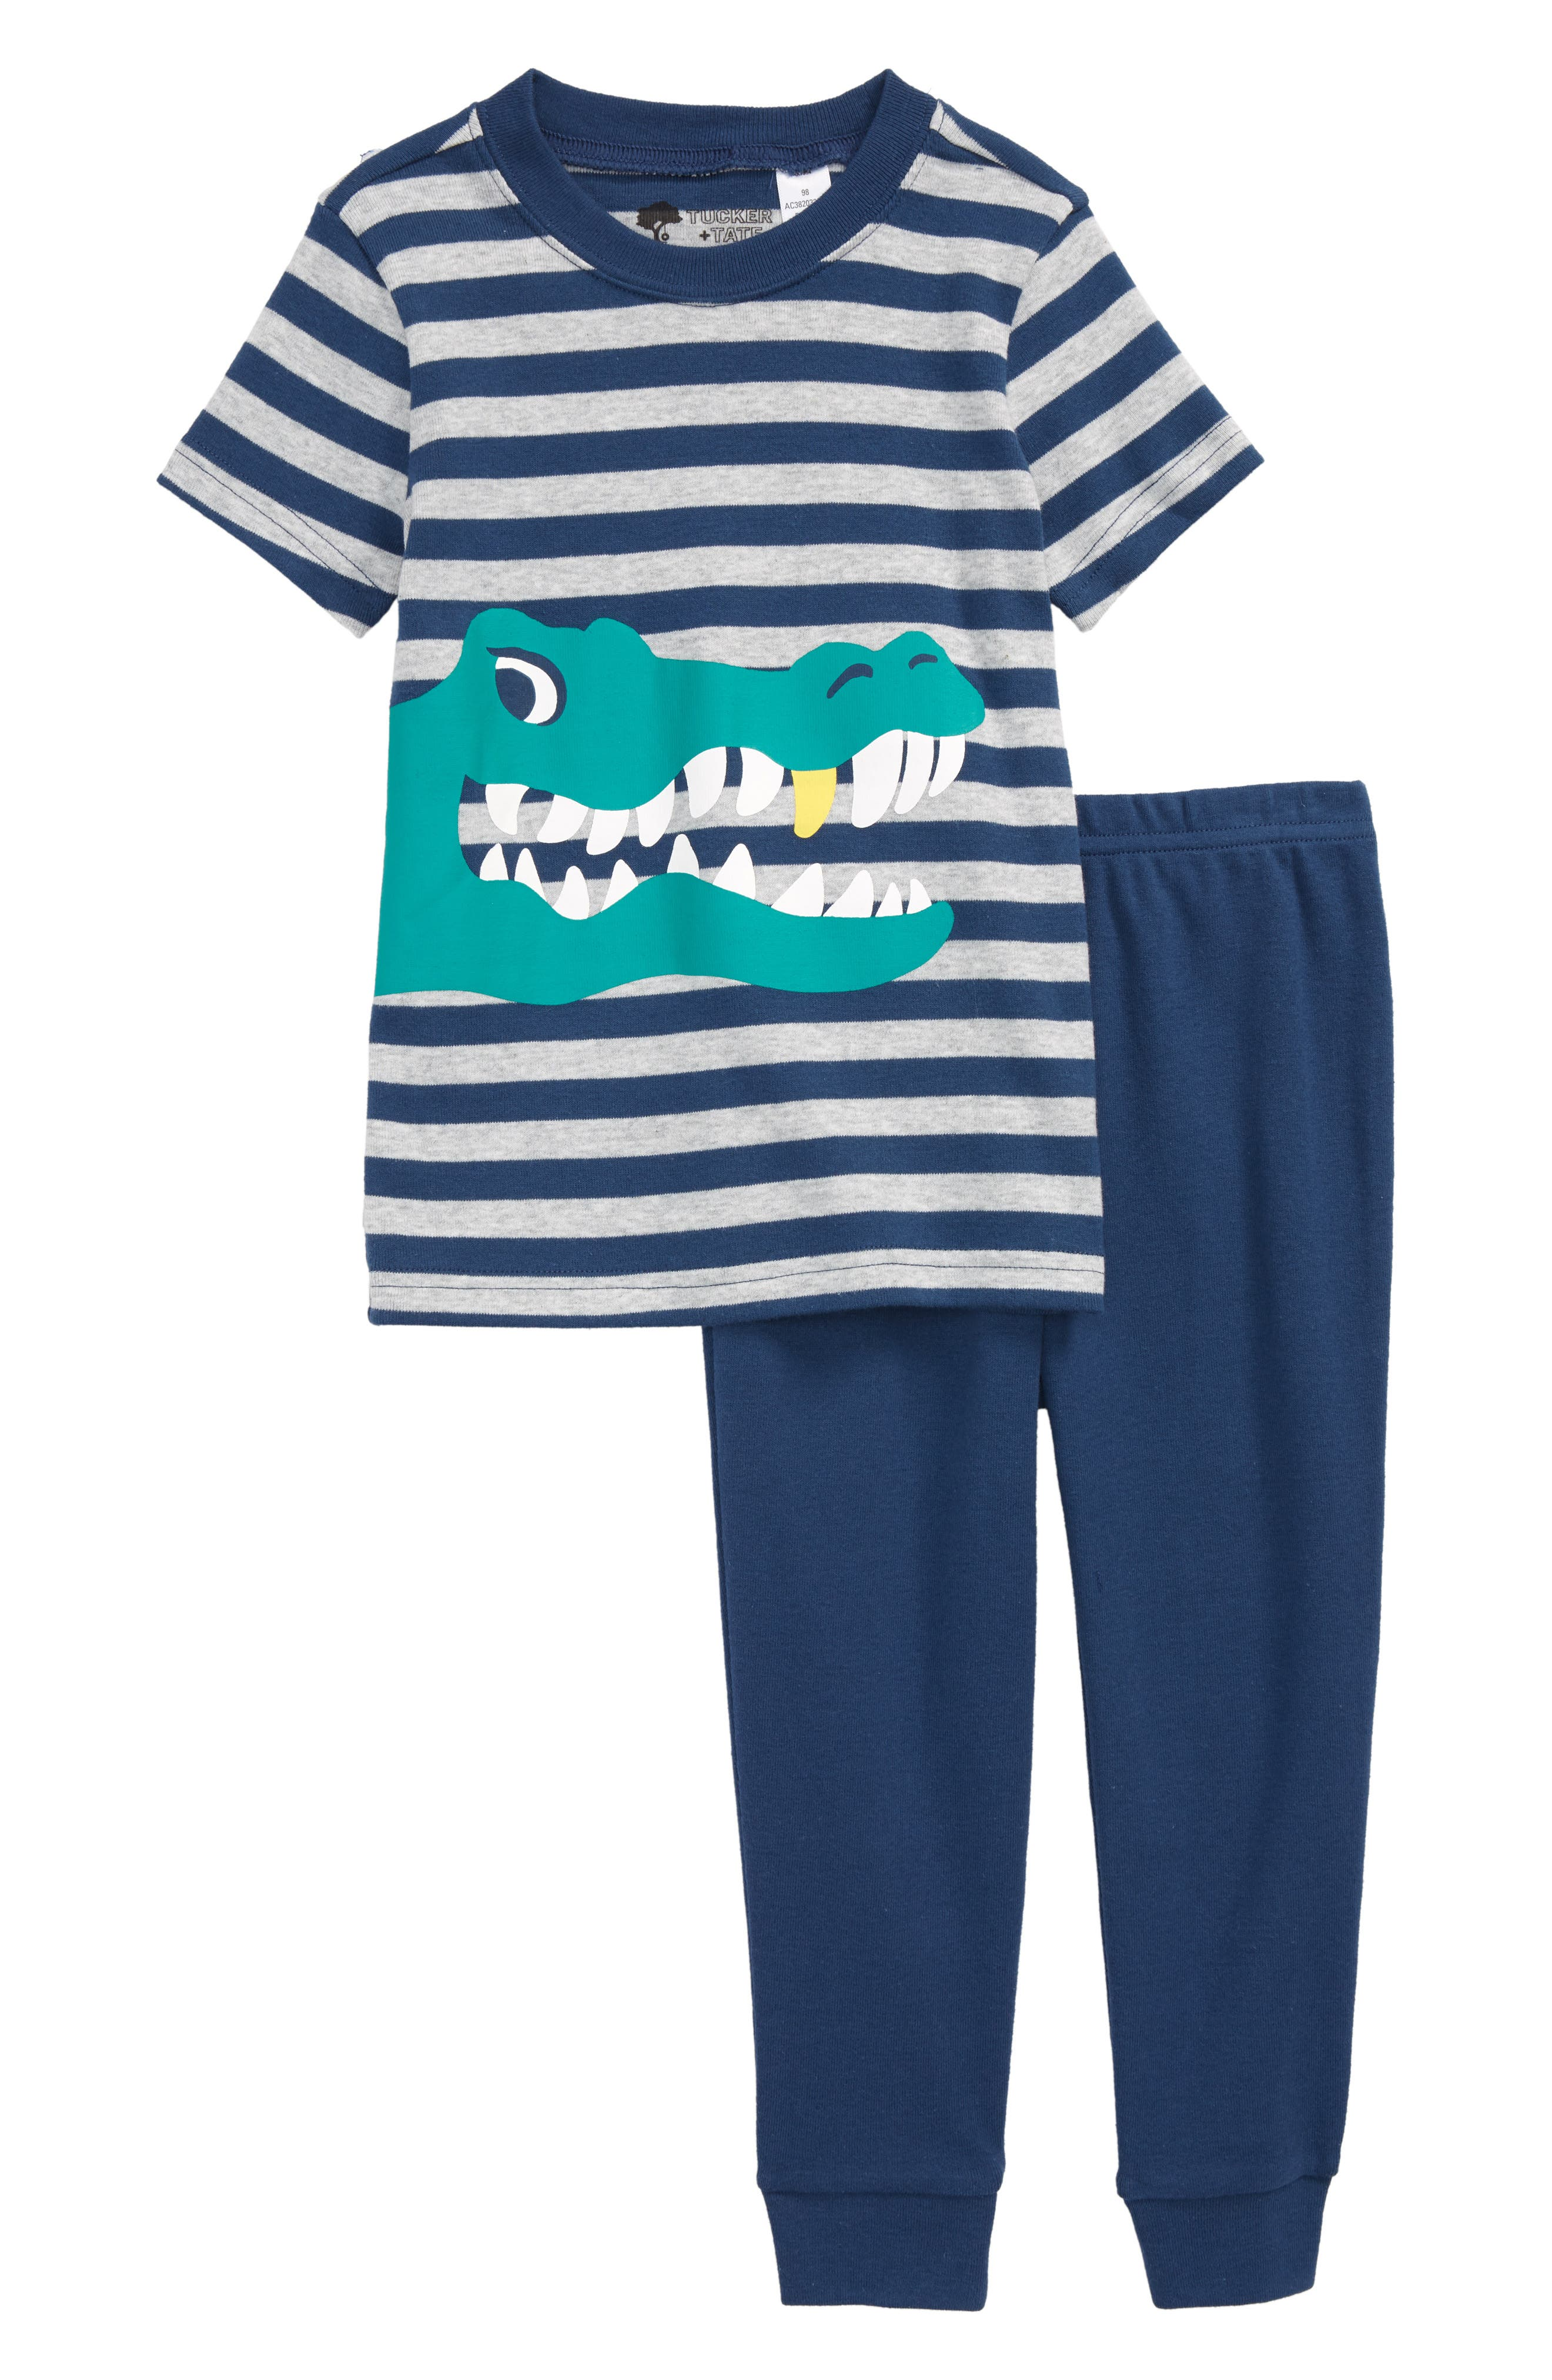 Two-Piece Fitted Pajamas,                             Main thumbnail 1, color,                             410